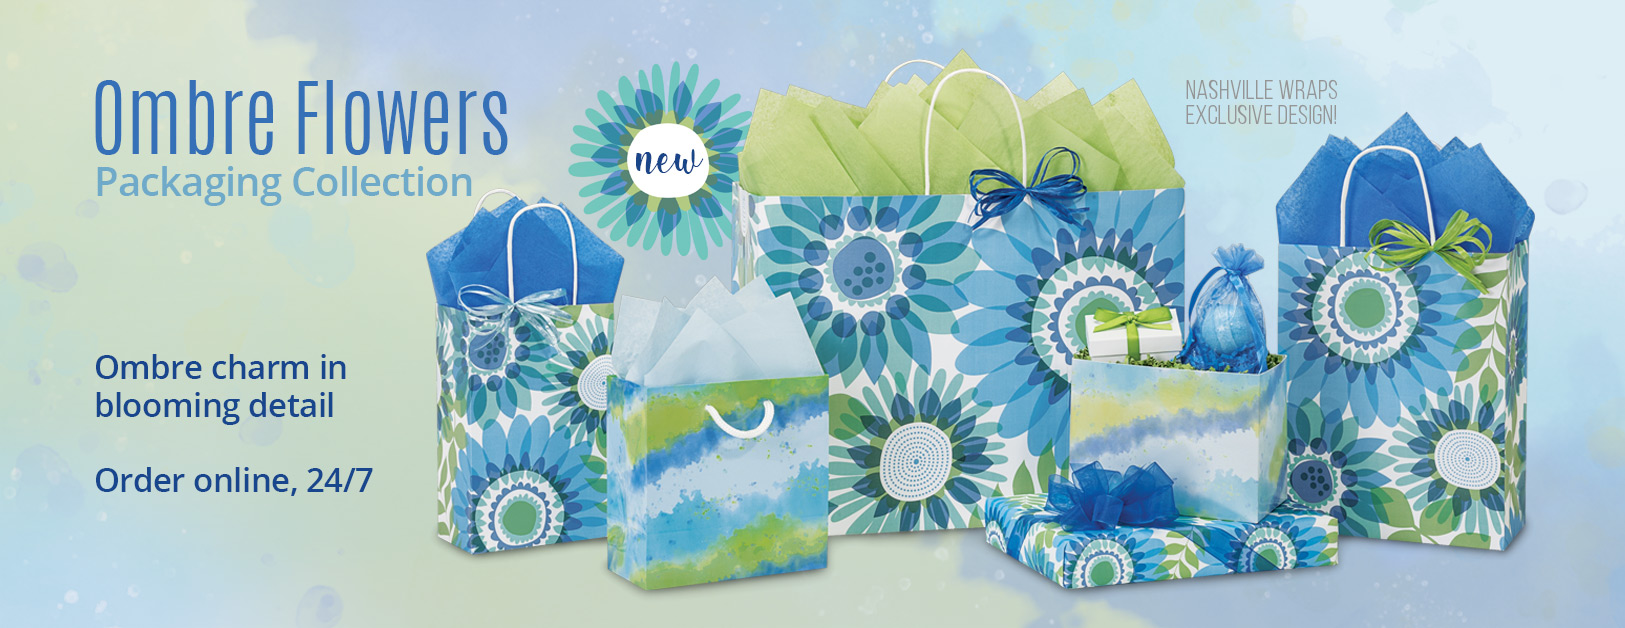 Ombre Flowers Shopping Bags Collection from Nashville Wraps